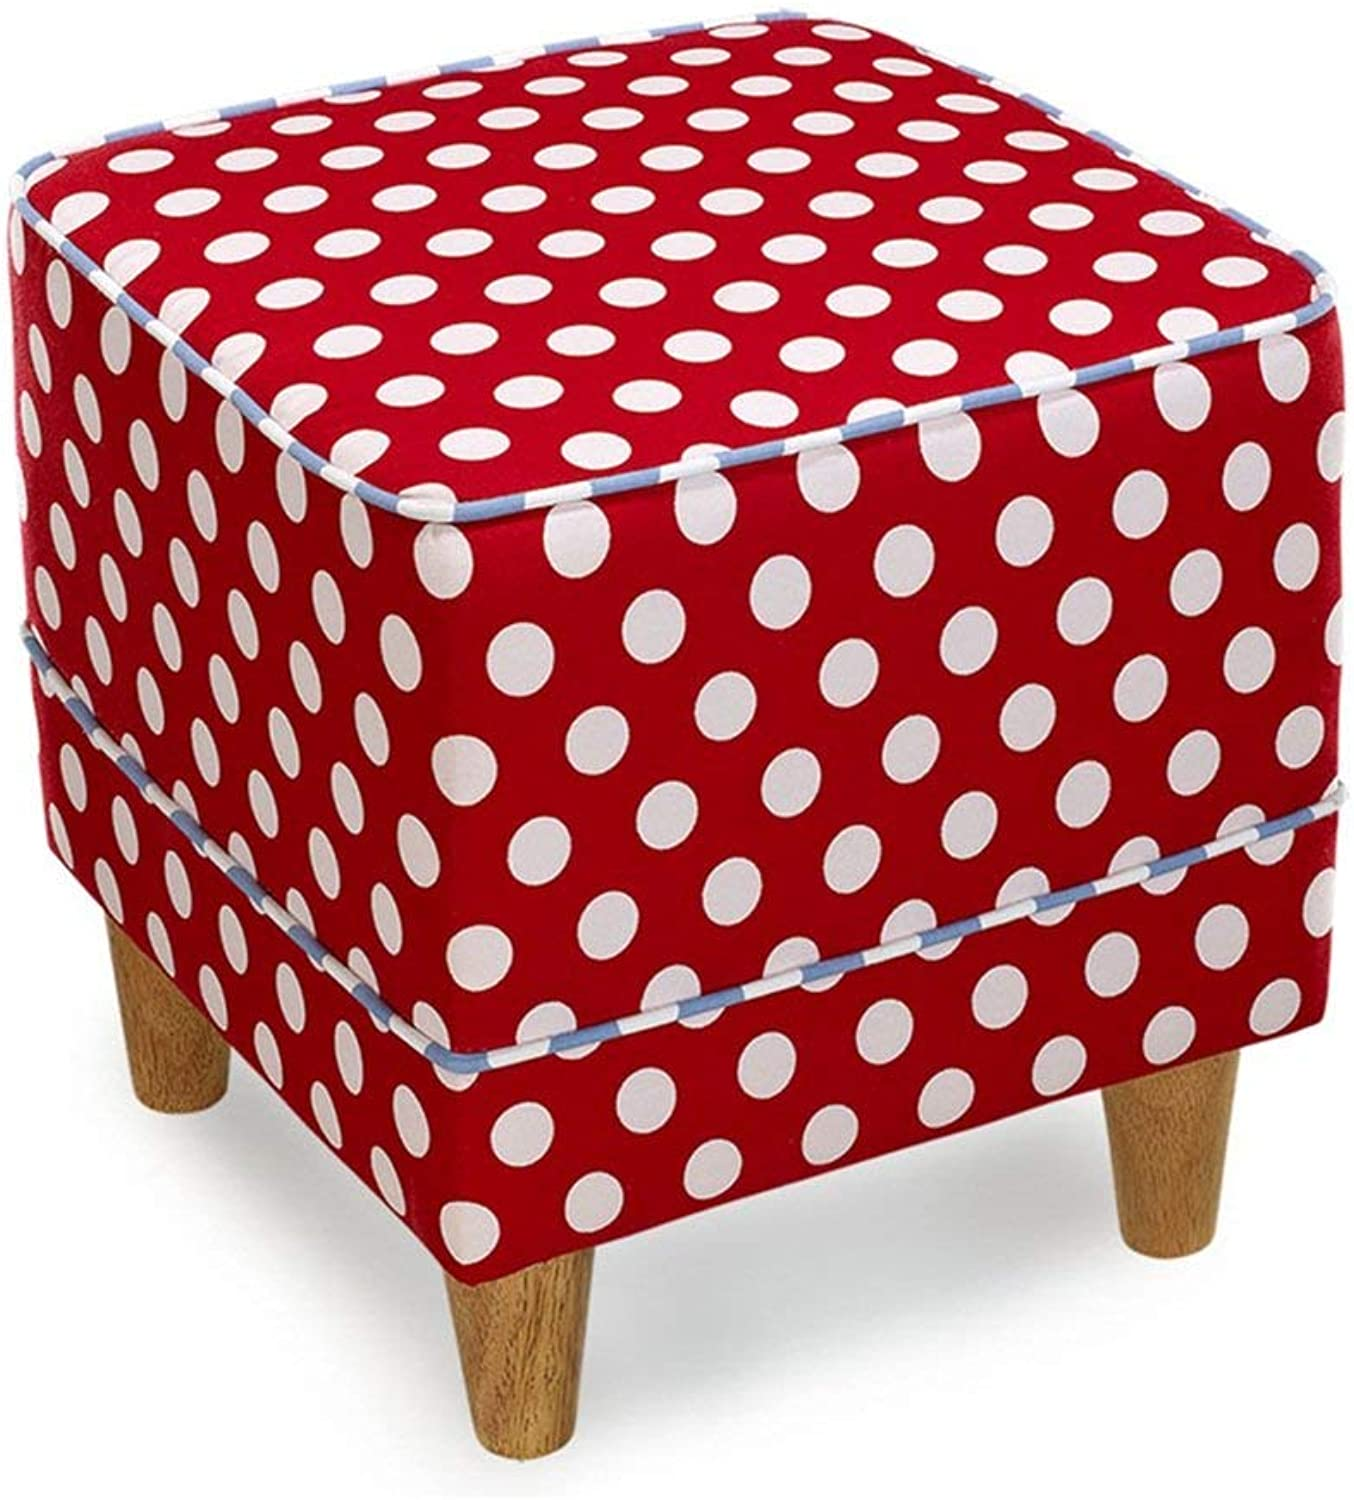 Comfortable Lounge Chair Solid Wood Fabric Stool, Simple Modern Living Room Sofa Bench (color   RED) (color   Red)